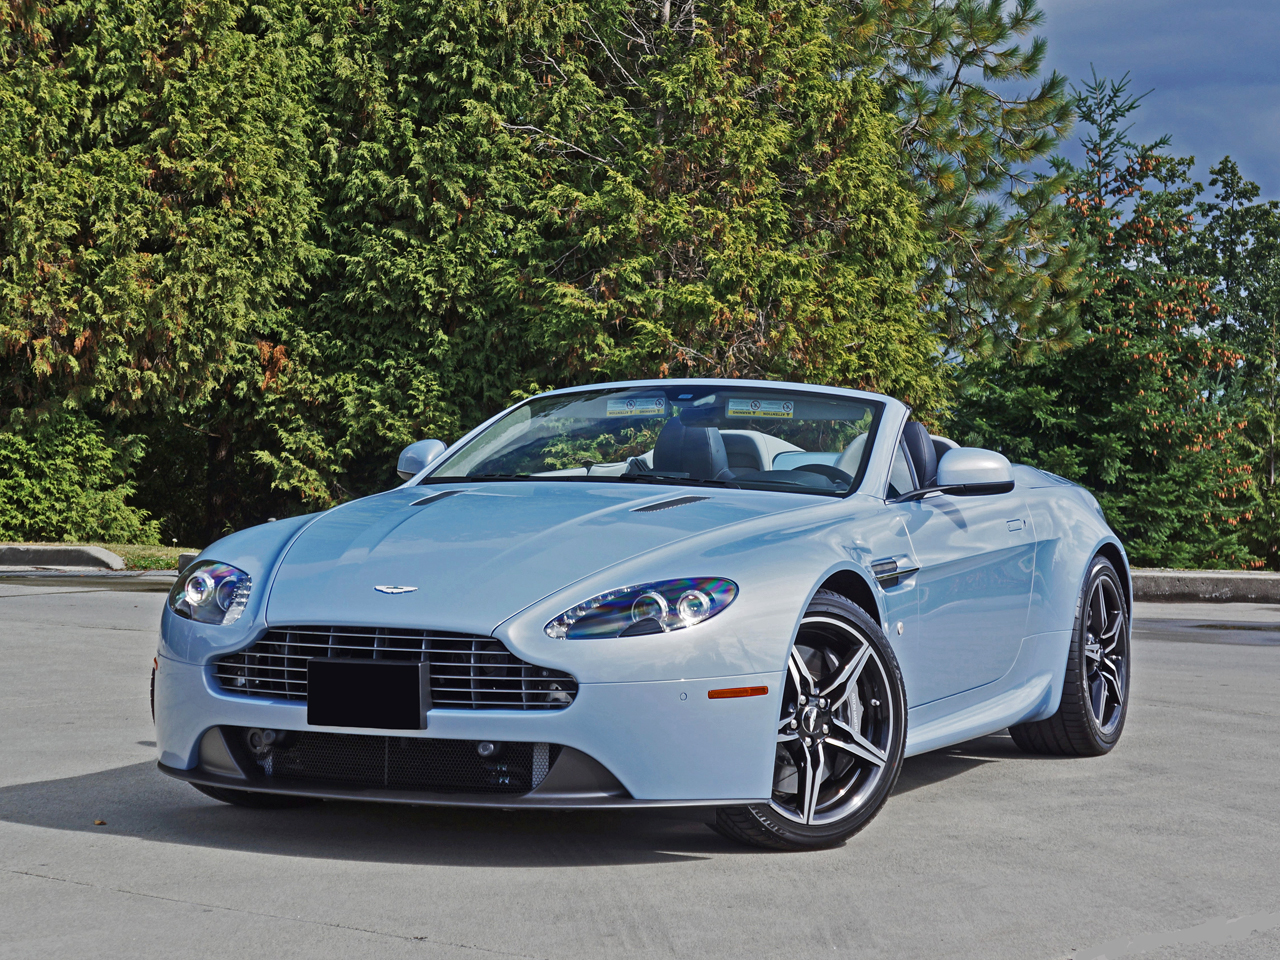 2016 aston martin v8 vantage roadster road test review carcostcanada. Black Bedroom Furniture Sets. Home Design Ideas